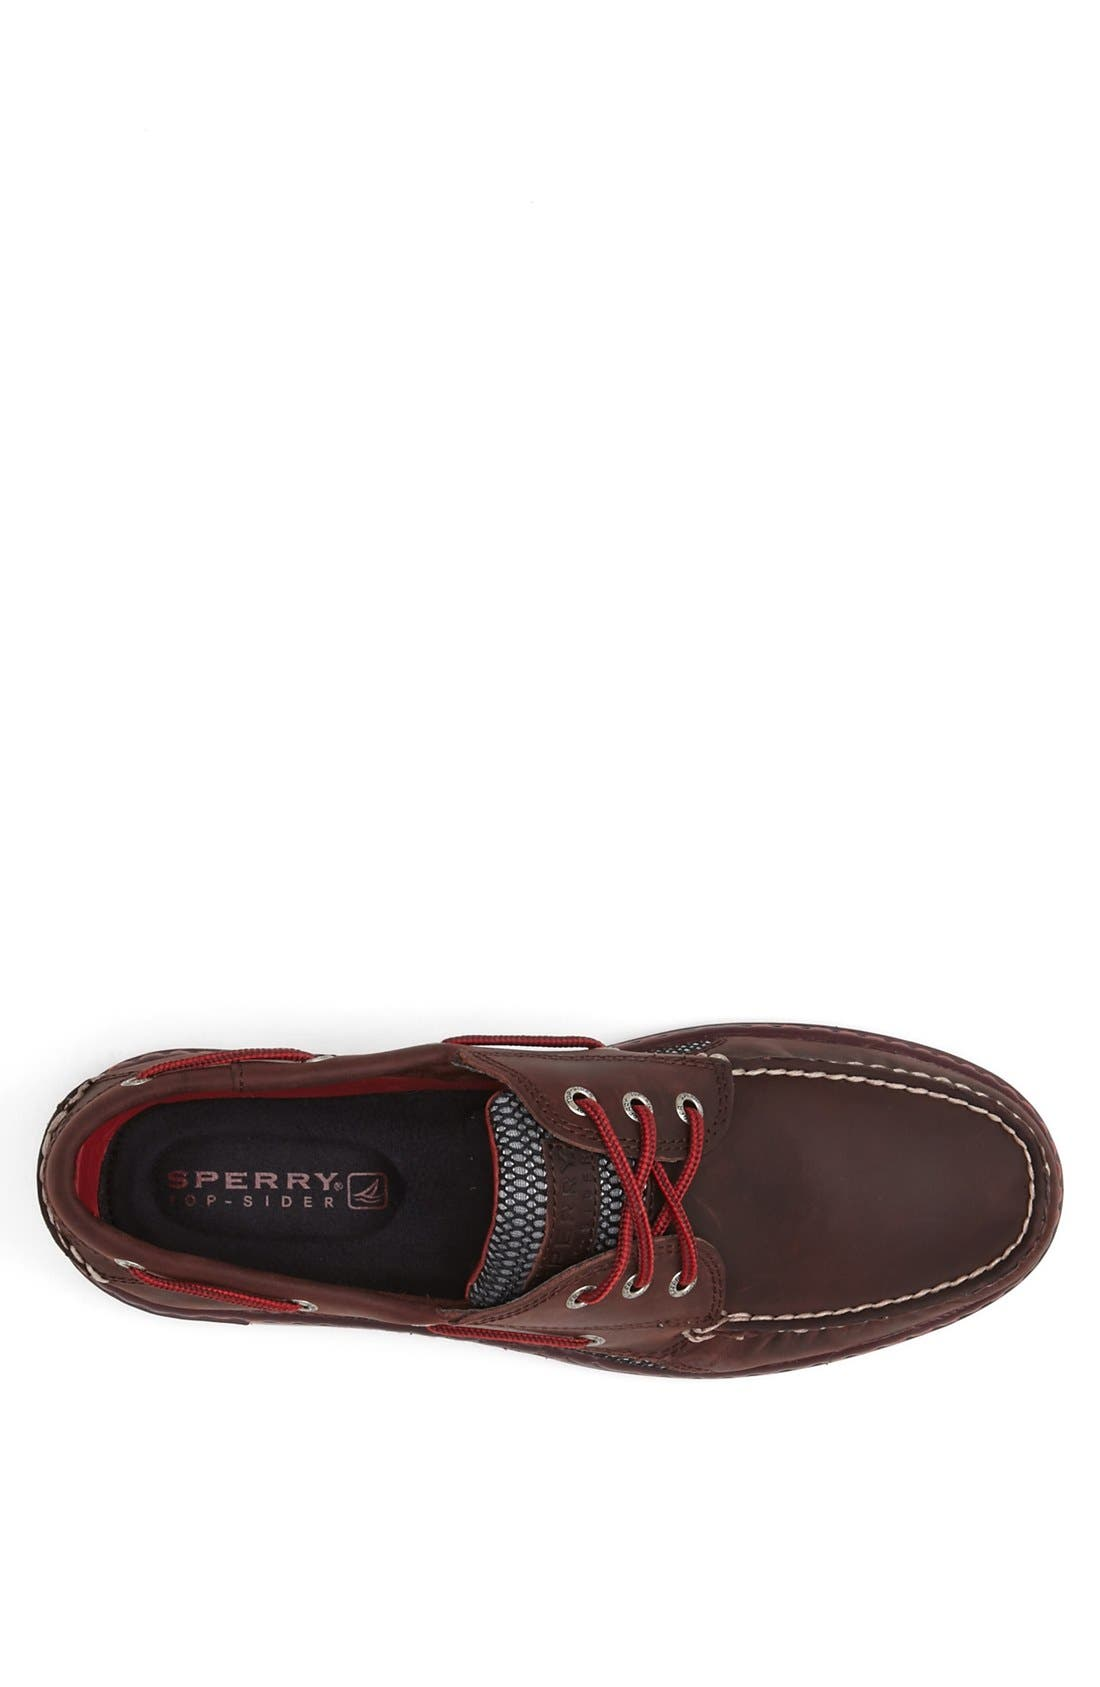 'Billfish Ultralite' Boat Shoe,                             Alternate thumbnail 60, color,